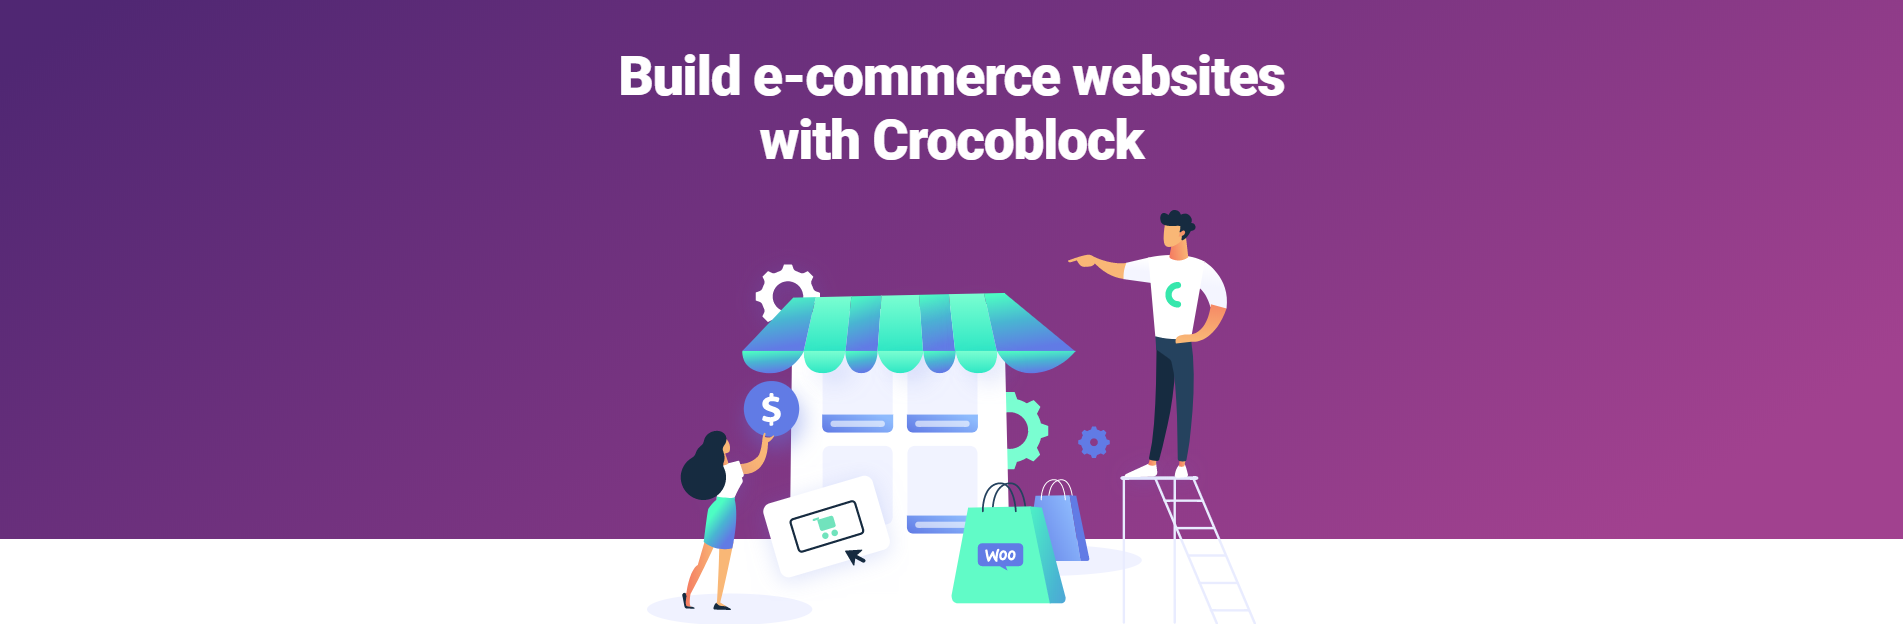 elementor woocommerce add-ons 1